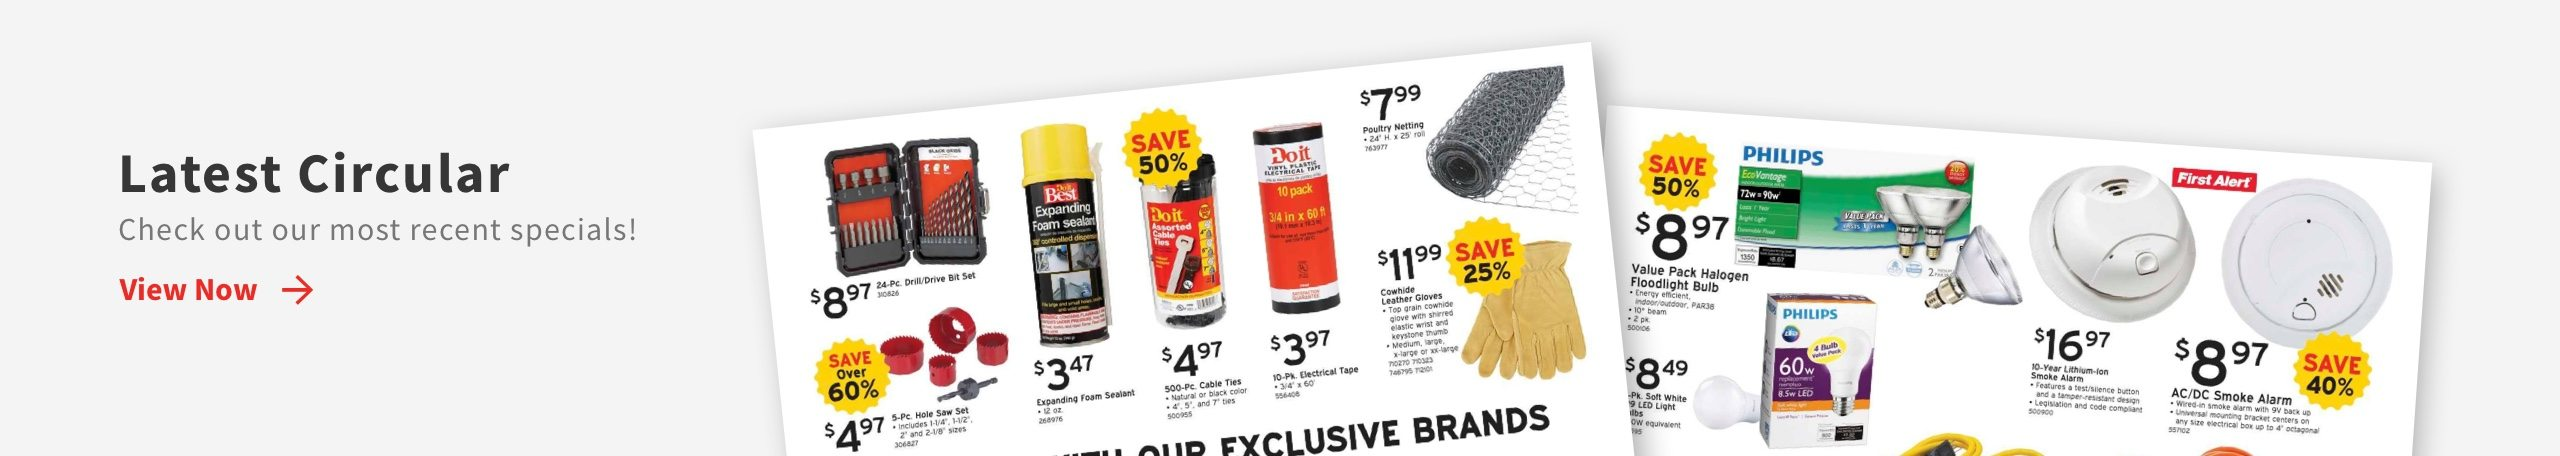 Download the The latest ad from Heller's Hardware